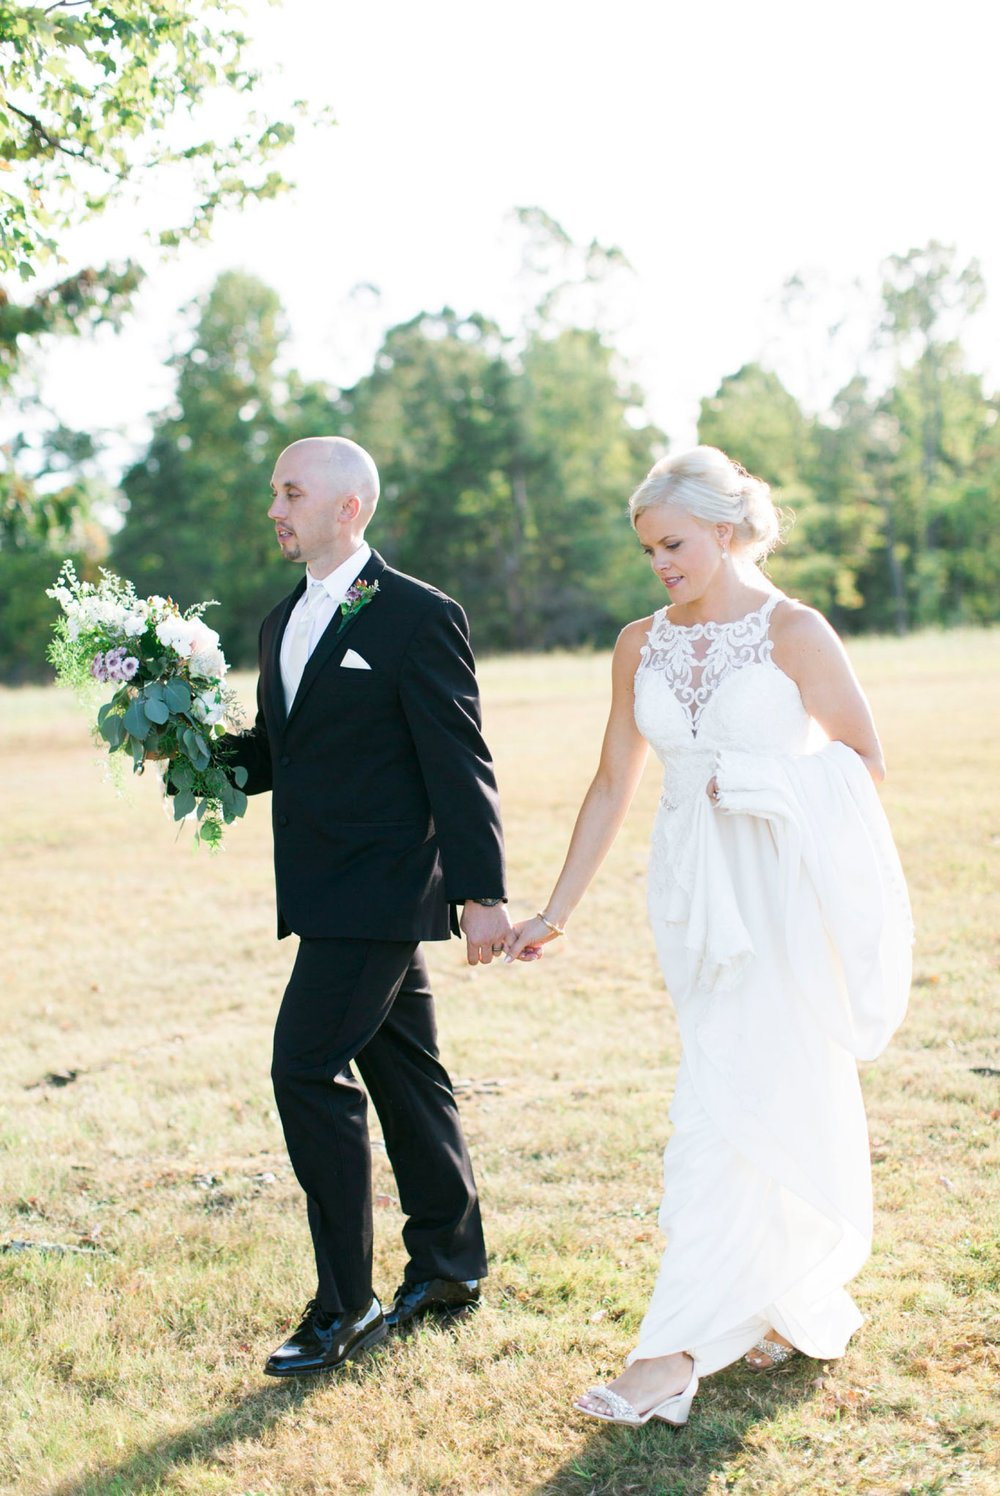 TheMillHouse_ChathamVA_WeddingPhotographer_VirginiaWeddingPhotographer_9.jpg 100.jpg